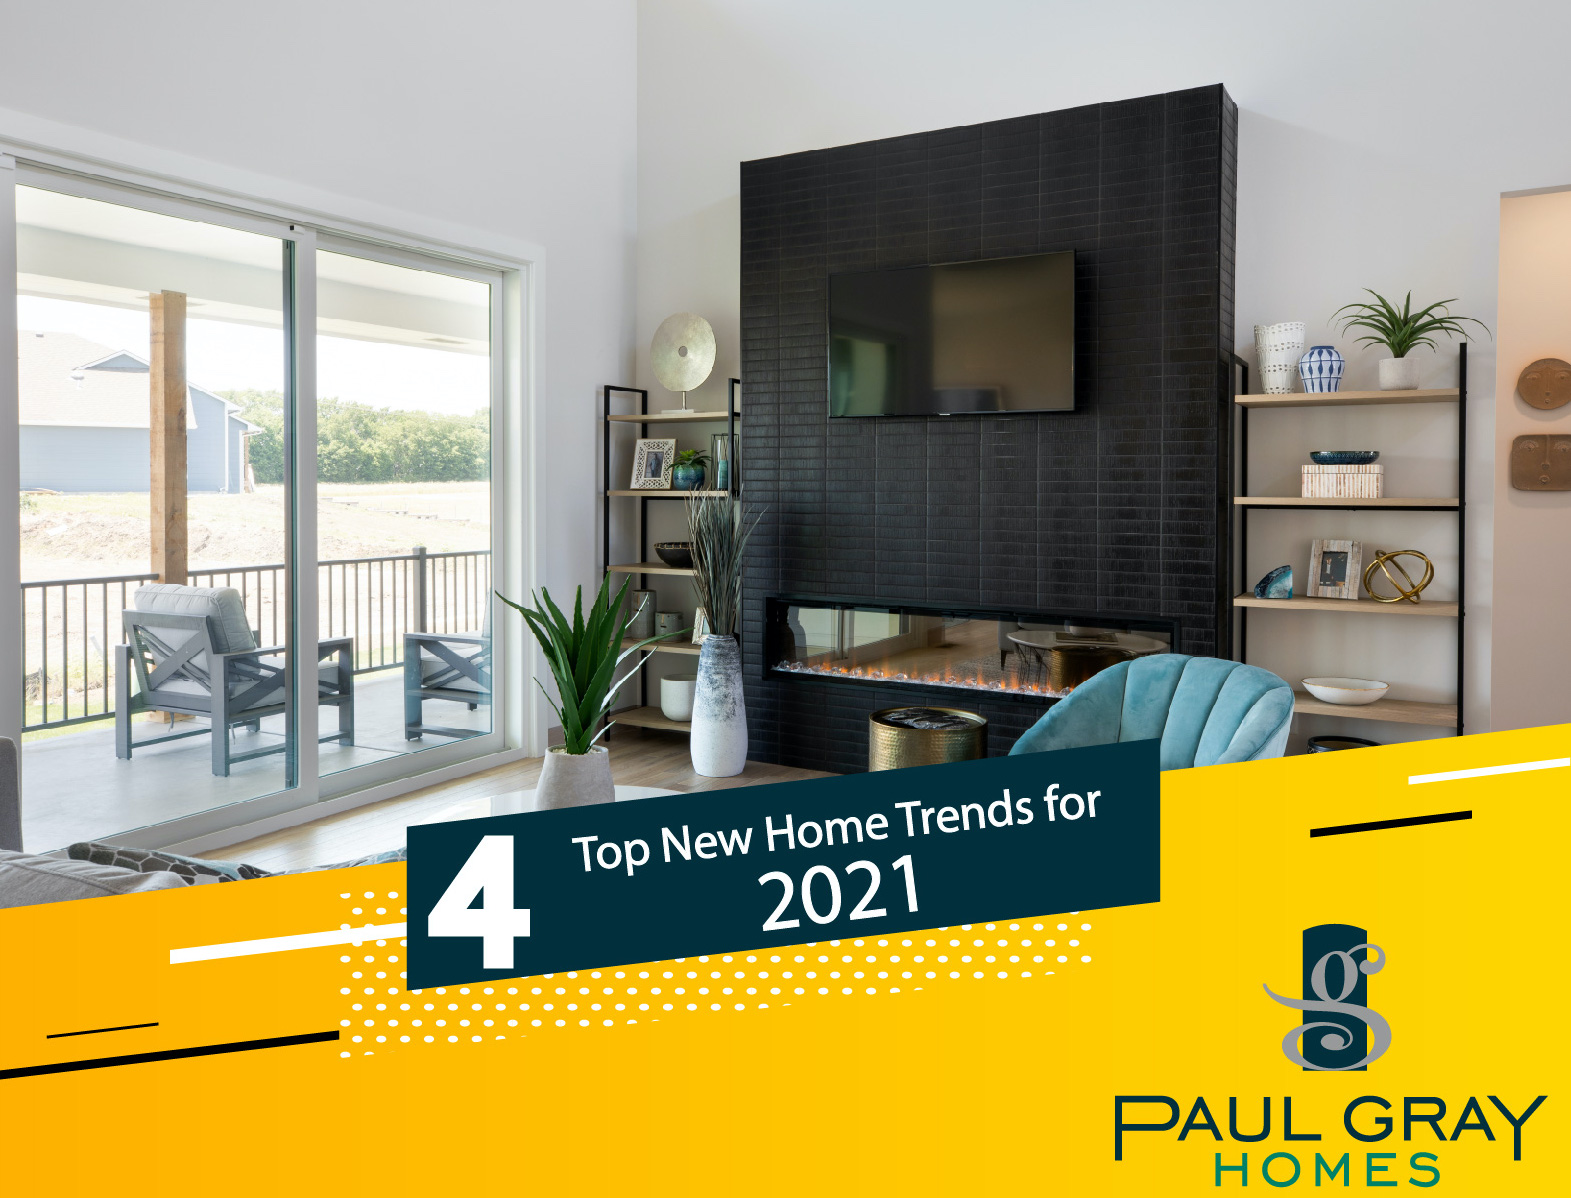 4 Top New Home Trends in 2021